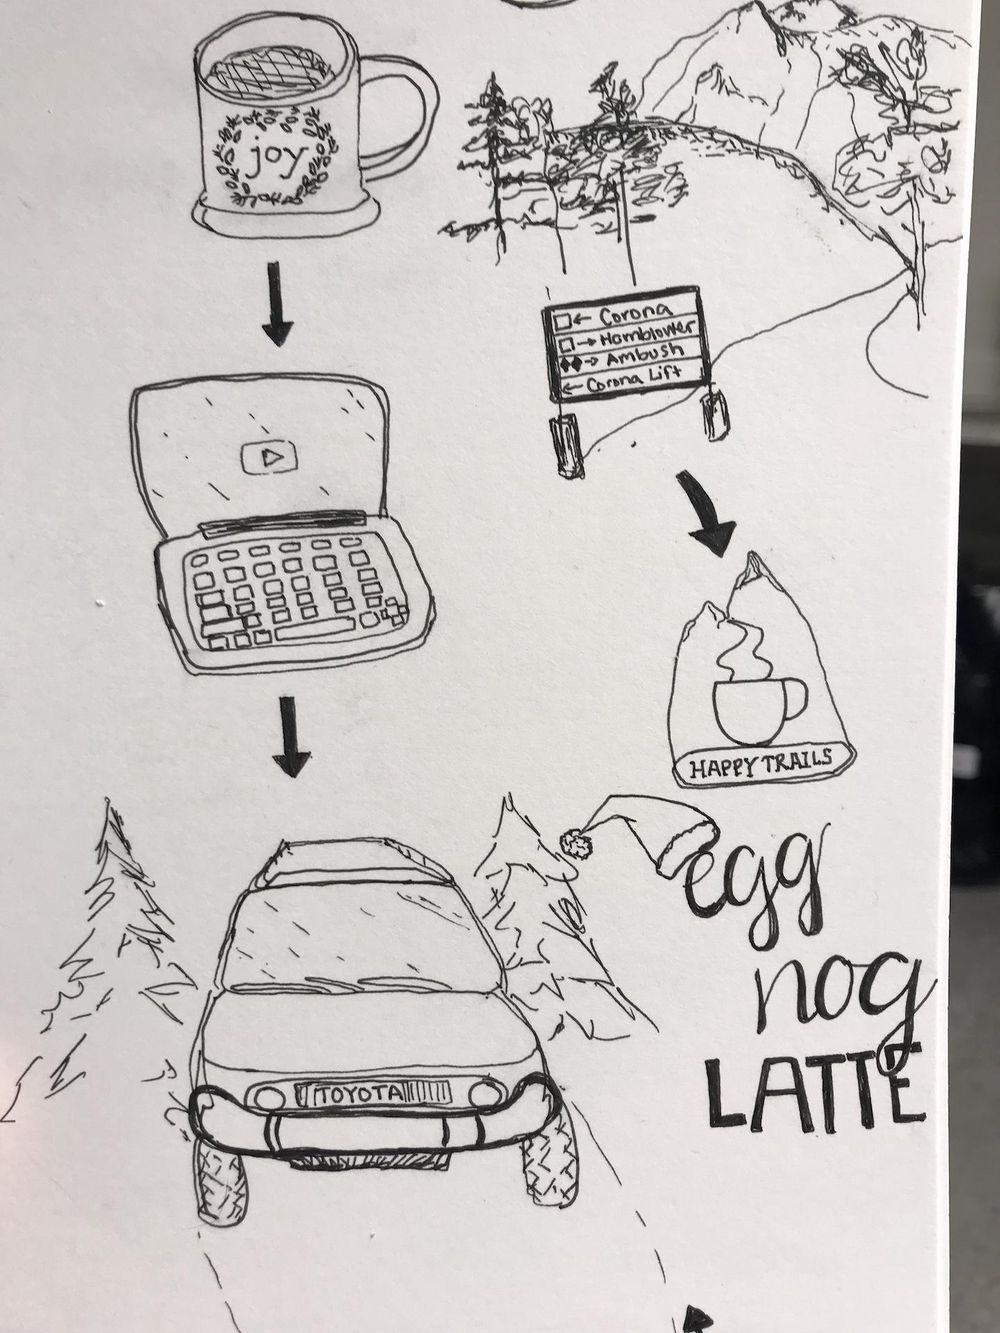 draw your day-roadmap - image 1 - student project